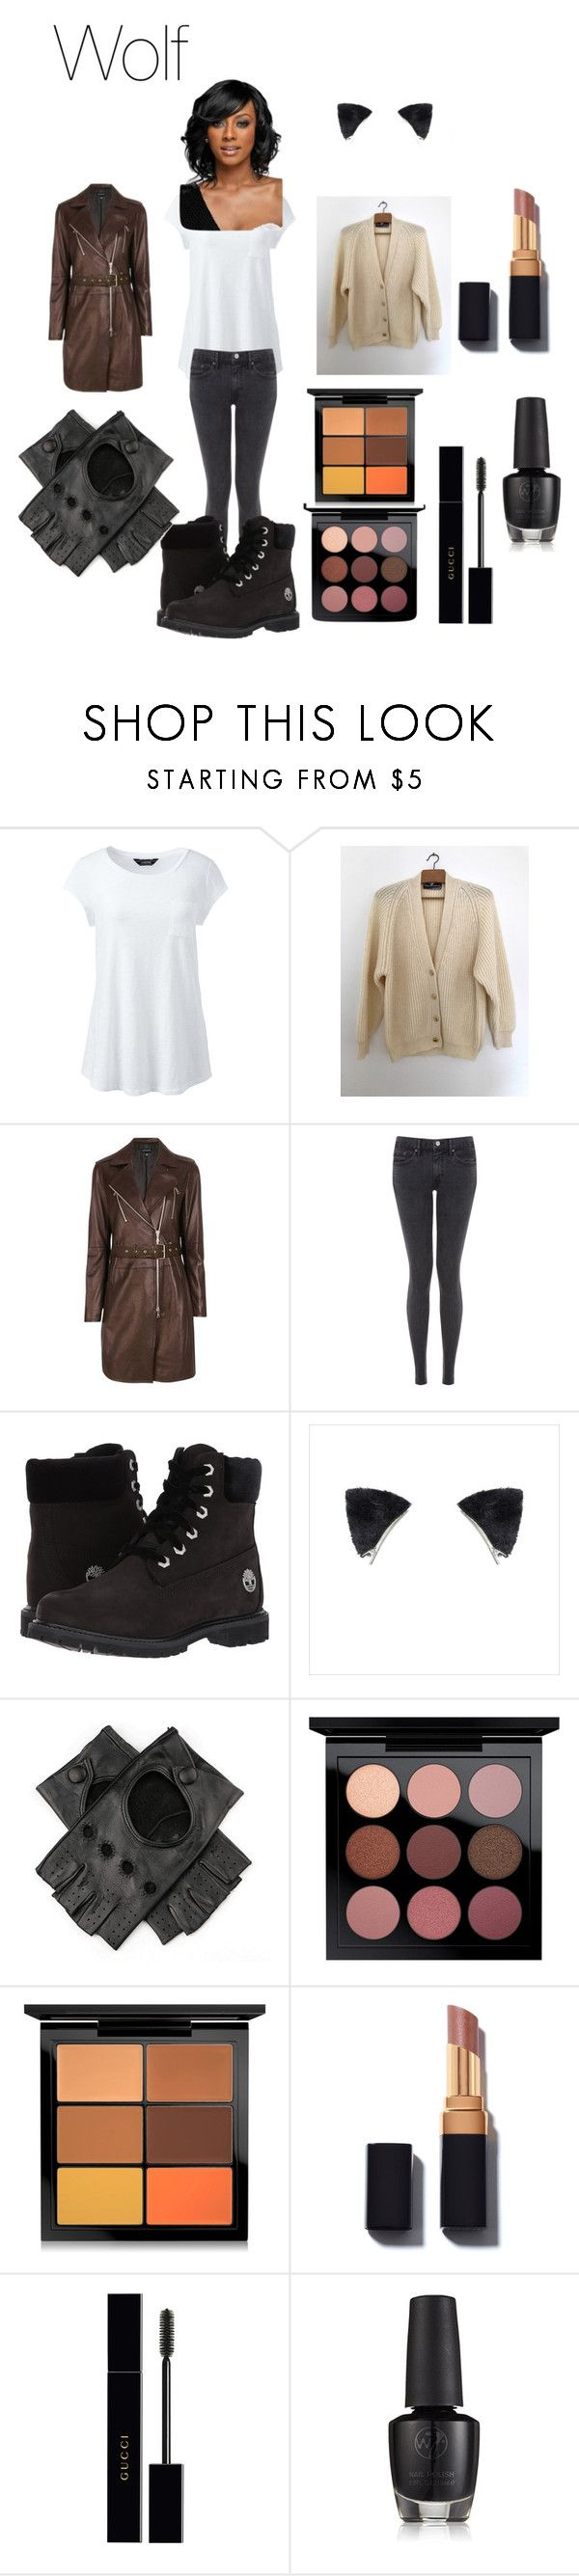 """Wolf From Wolf Song Animatic Youtube"" by tori-camilleri on Polyvore featuring Lands' End, Manoukian, Joseph, Timberland, Black, MAC Cosmetics, Gucci, WithChic and plus size clothing"